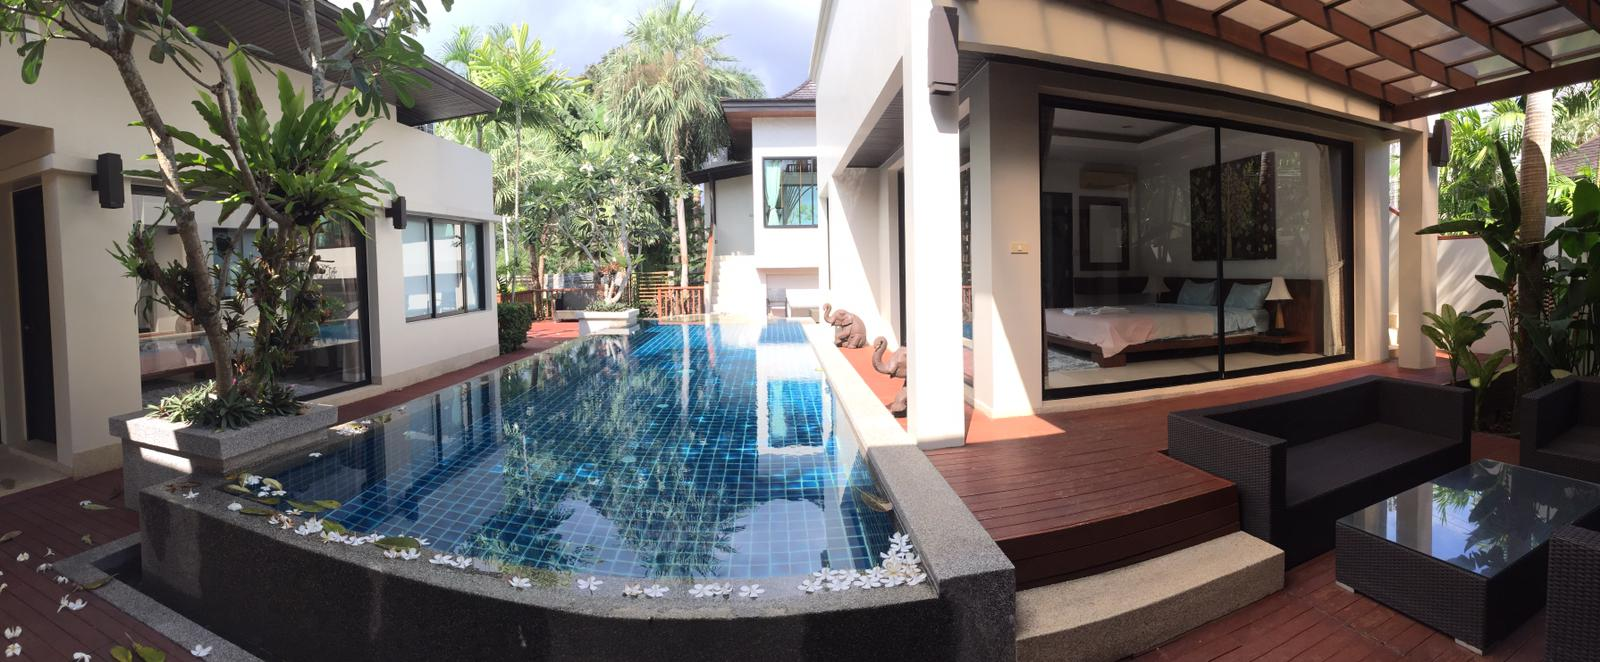 Layan Beach Spacious 4 Bedroom Pool Villa-ad27e59d-efe2-4820-97f1-94d00724aef9(1).jpg